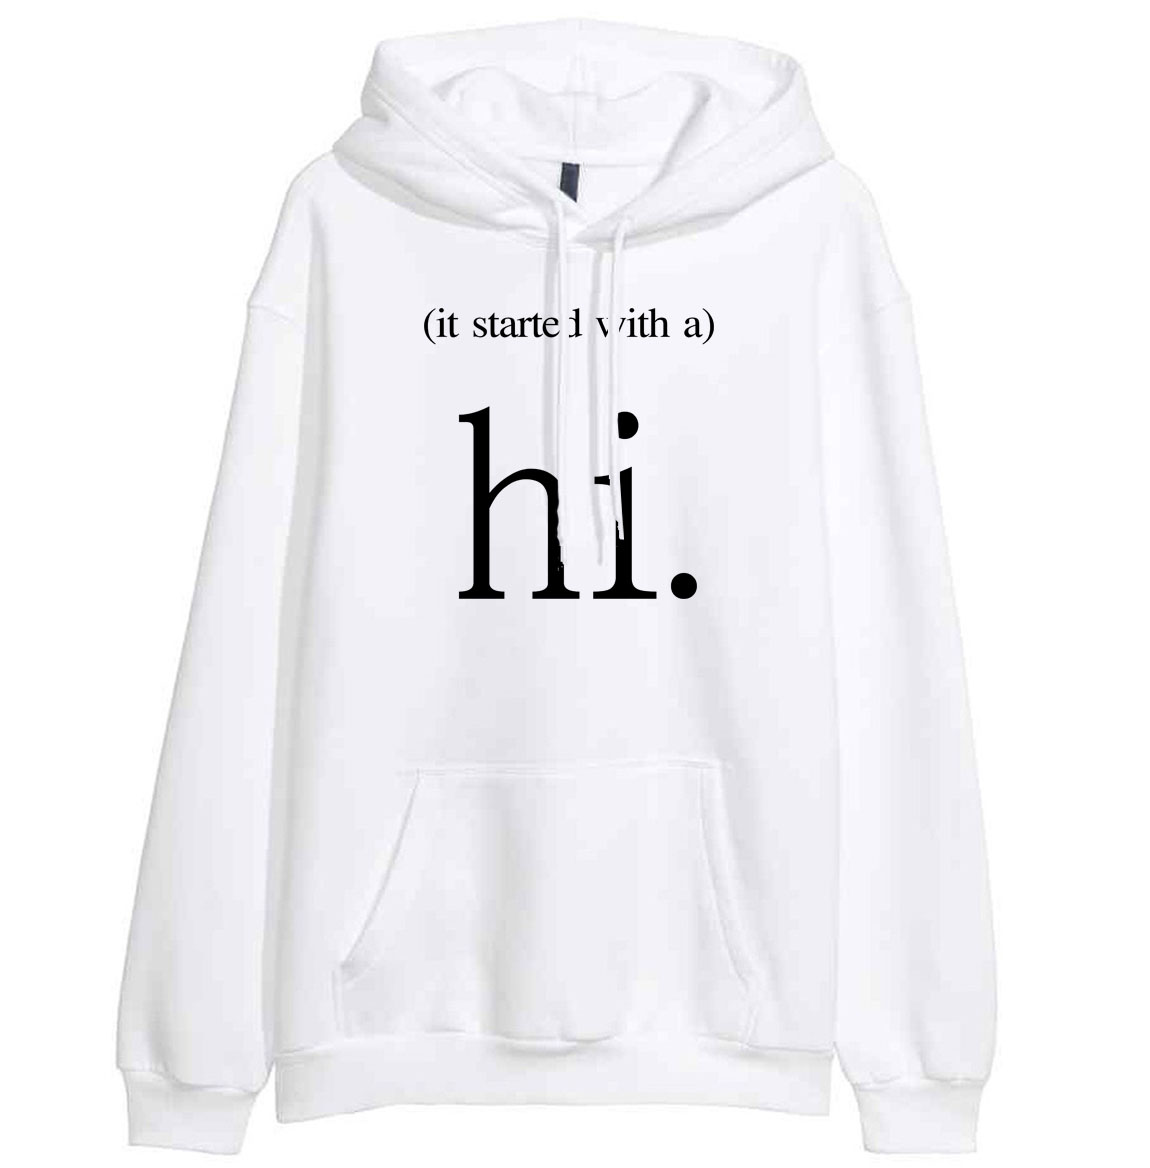 IT STARTED WITH A HI Funny Letter Print Sweatshirt For Women Hoody 2019 Spring Winter Pullover Female Sweatshirts Hoodies Kawaii